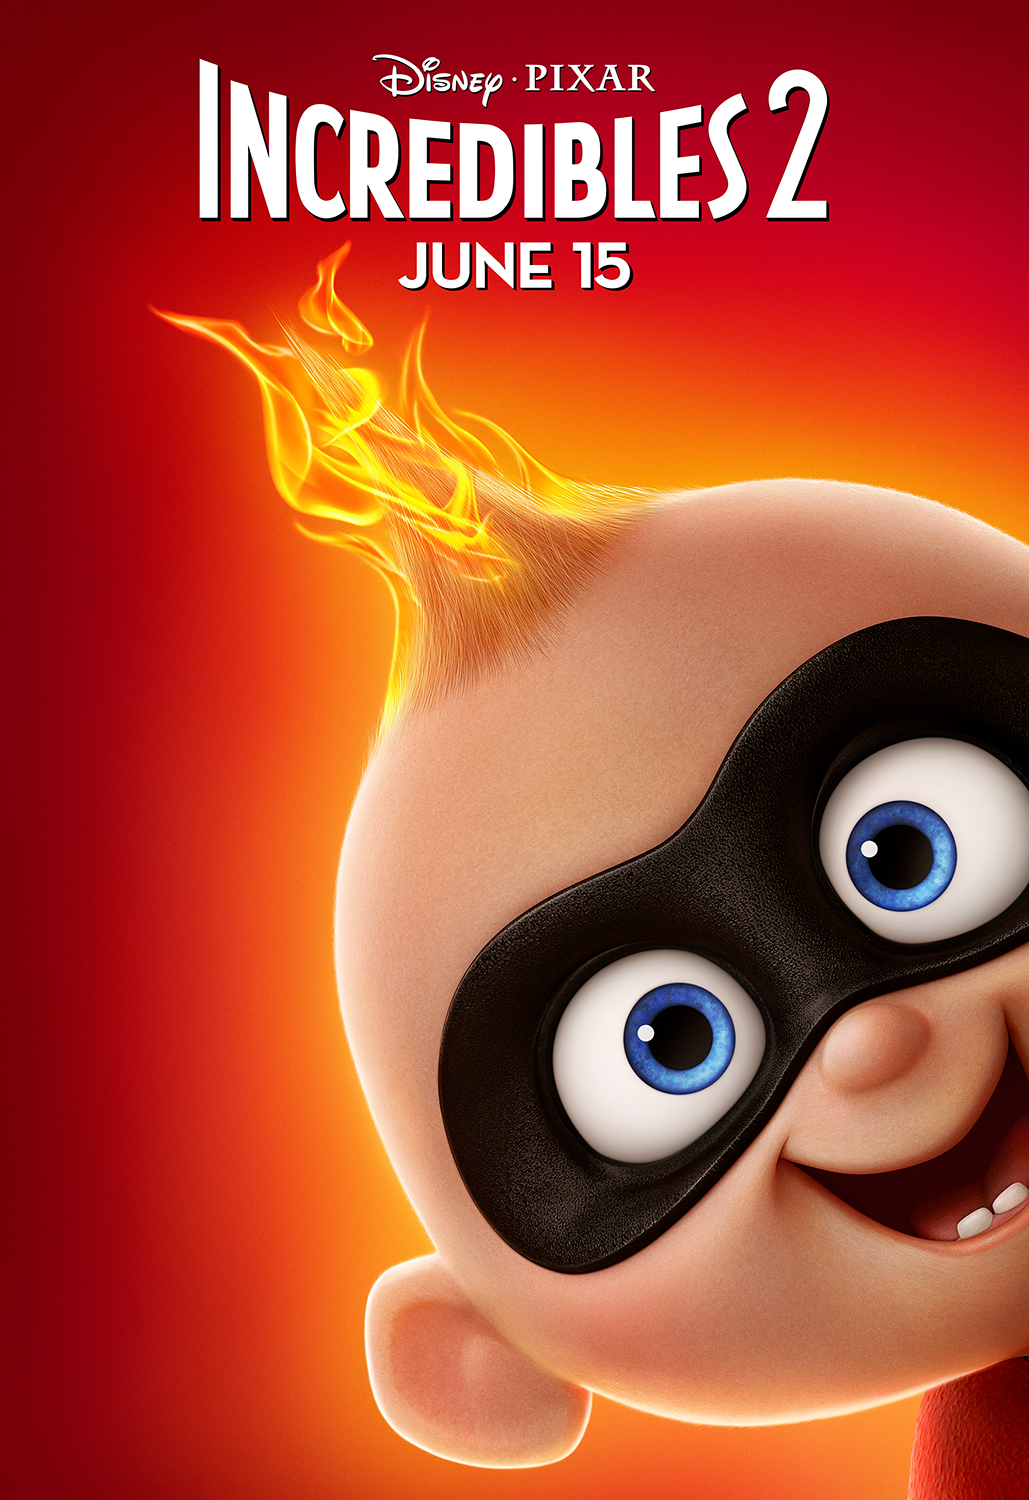 Incredibles 2 | Jack Jack Bus Shelter Concept, Finishing & Illustration